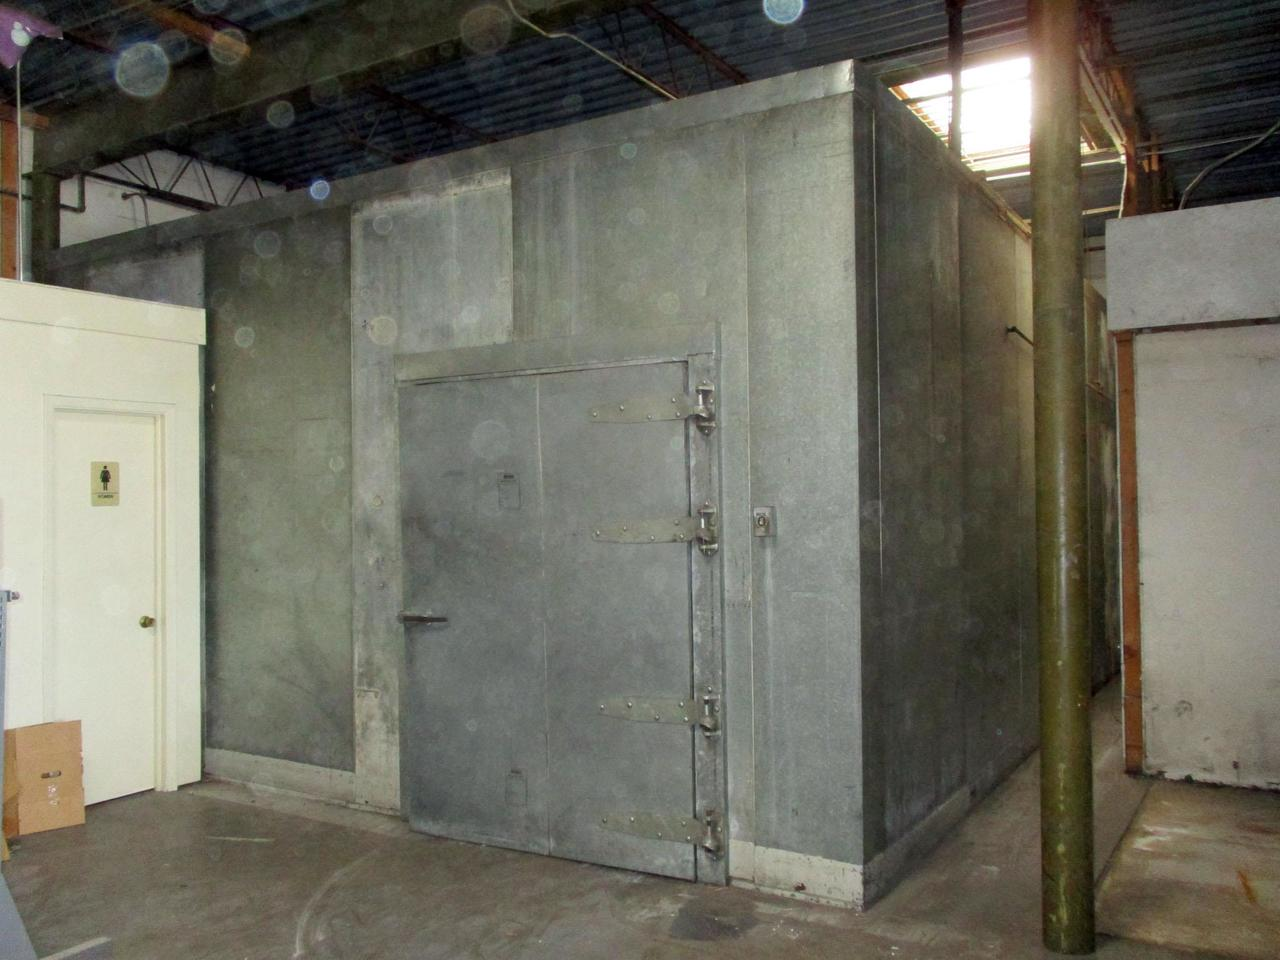 Walk In Freezer For Sale >> Walk In Freezer Cold Room 23x18x10 T120455 Test Equipment And